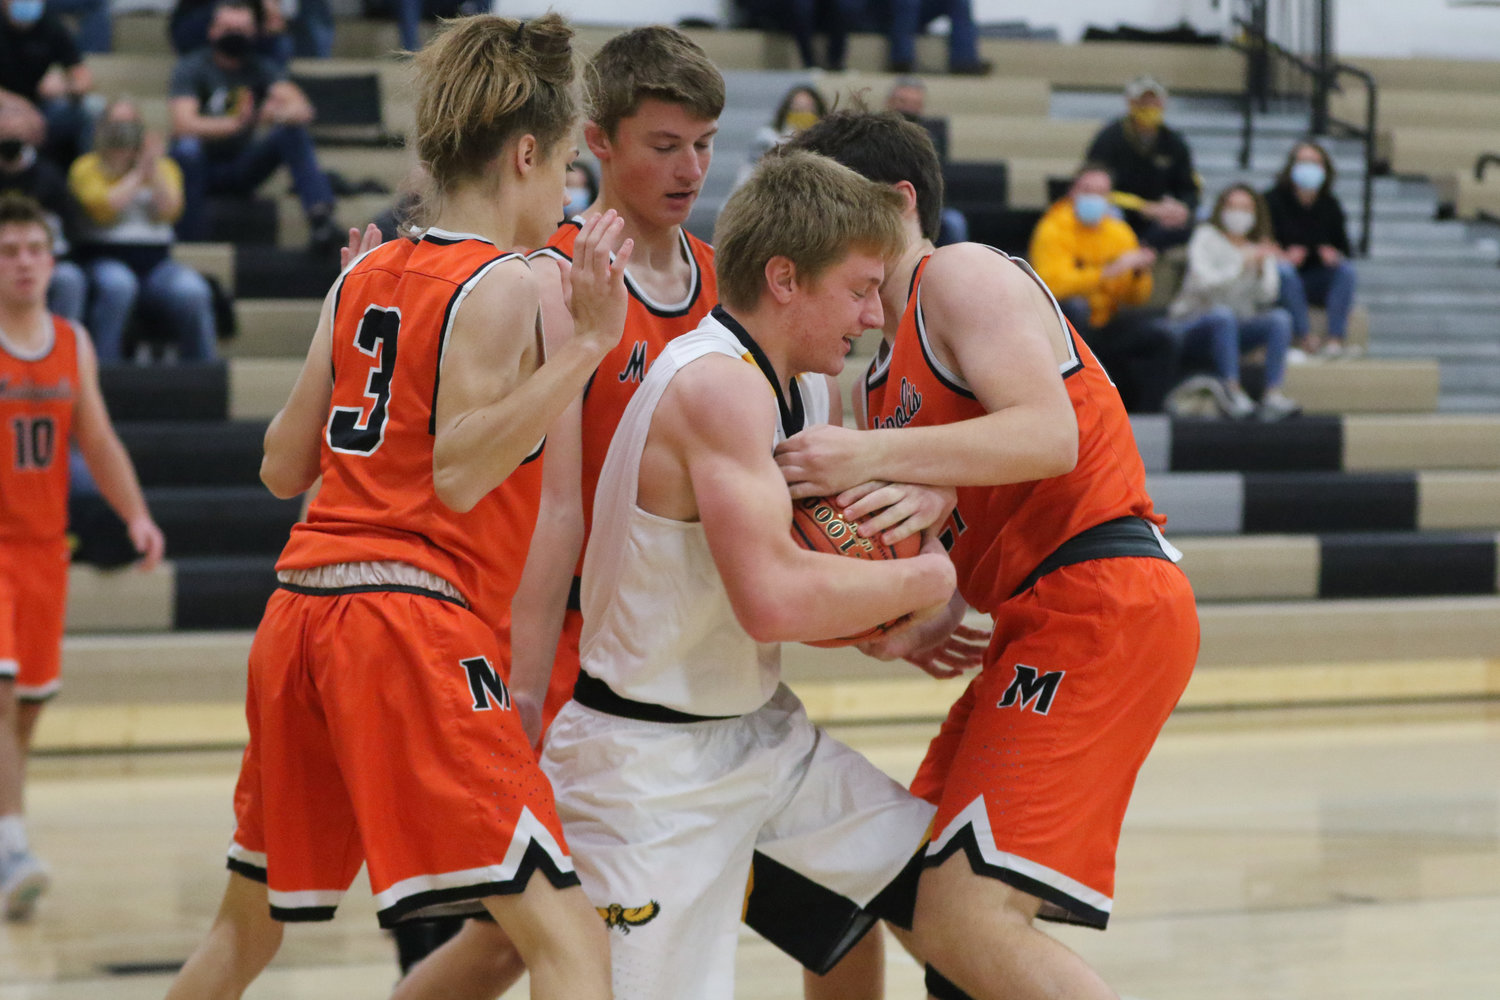 Luke Boyse is surrounded by Bulldog defenders after grabbing a rebound during the first quarter of a scrimmage with Mediapolis in Wellman on Saturday, November 21.